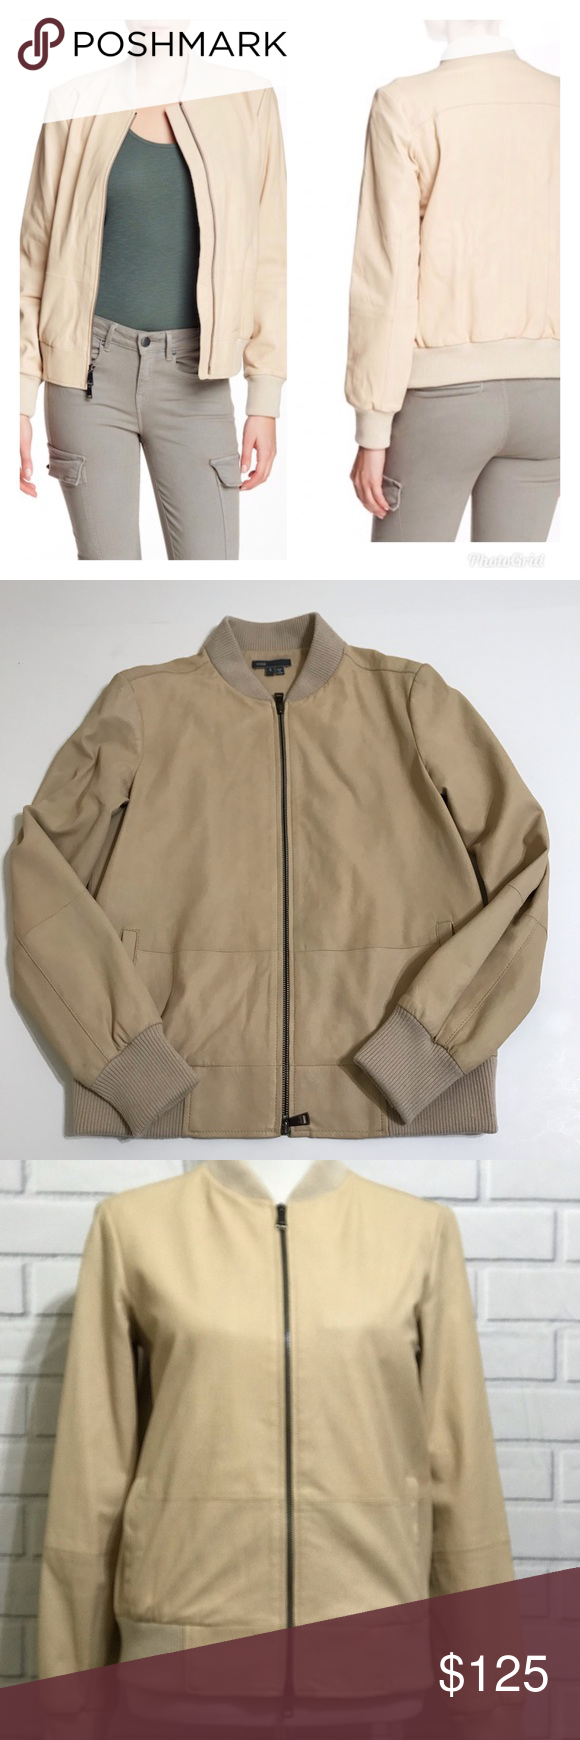 Vince Leather Tan Bomber Jacket Size Small Tan Bomber Jacket Bomber Jacket Leather Bomber Jacket [ 1740 x 580 Pixel ]